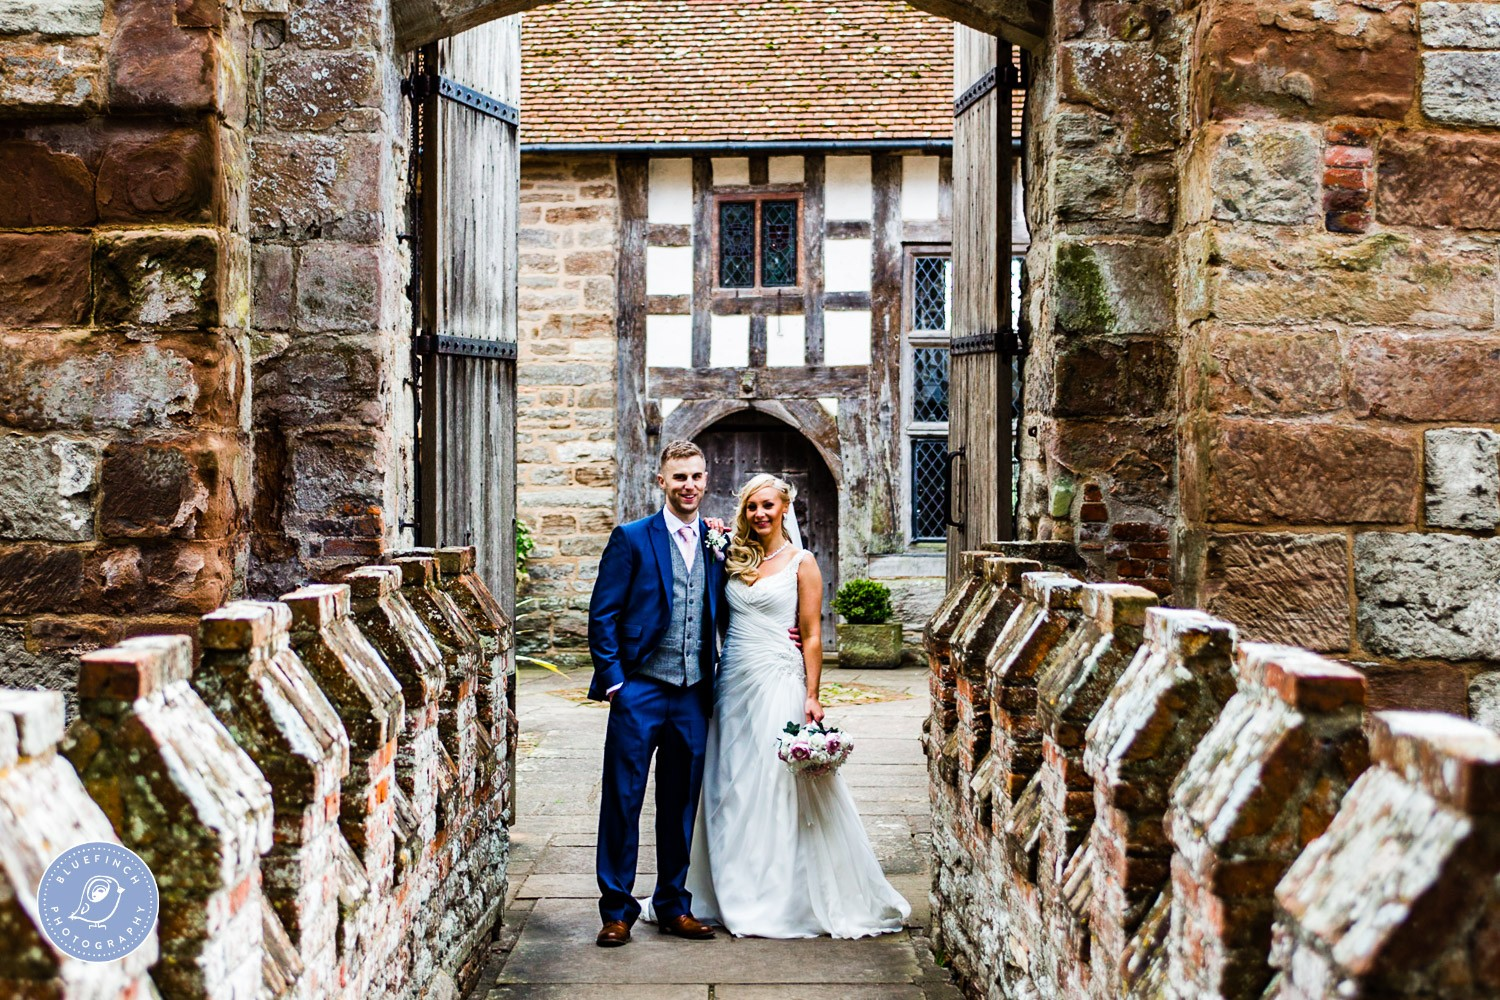 Ricci & Saralee's Wedding Photography at Birtsmorton Court